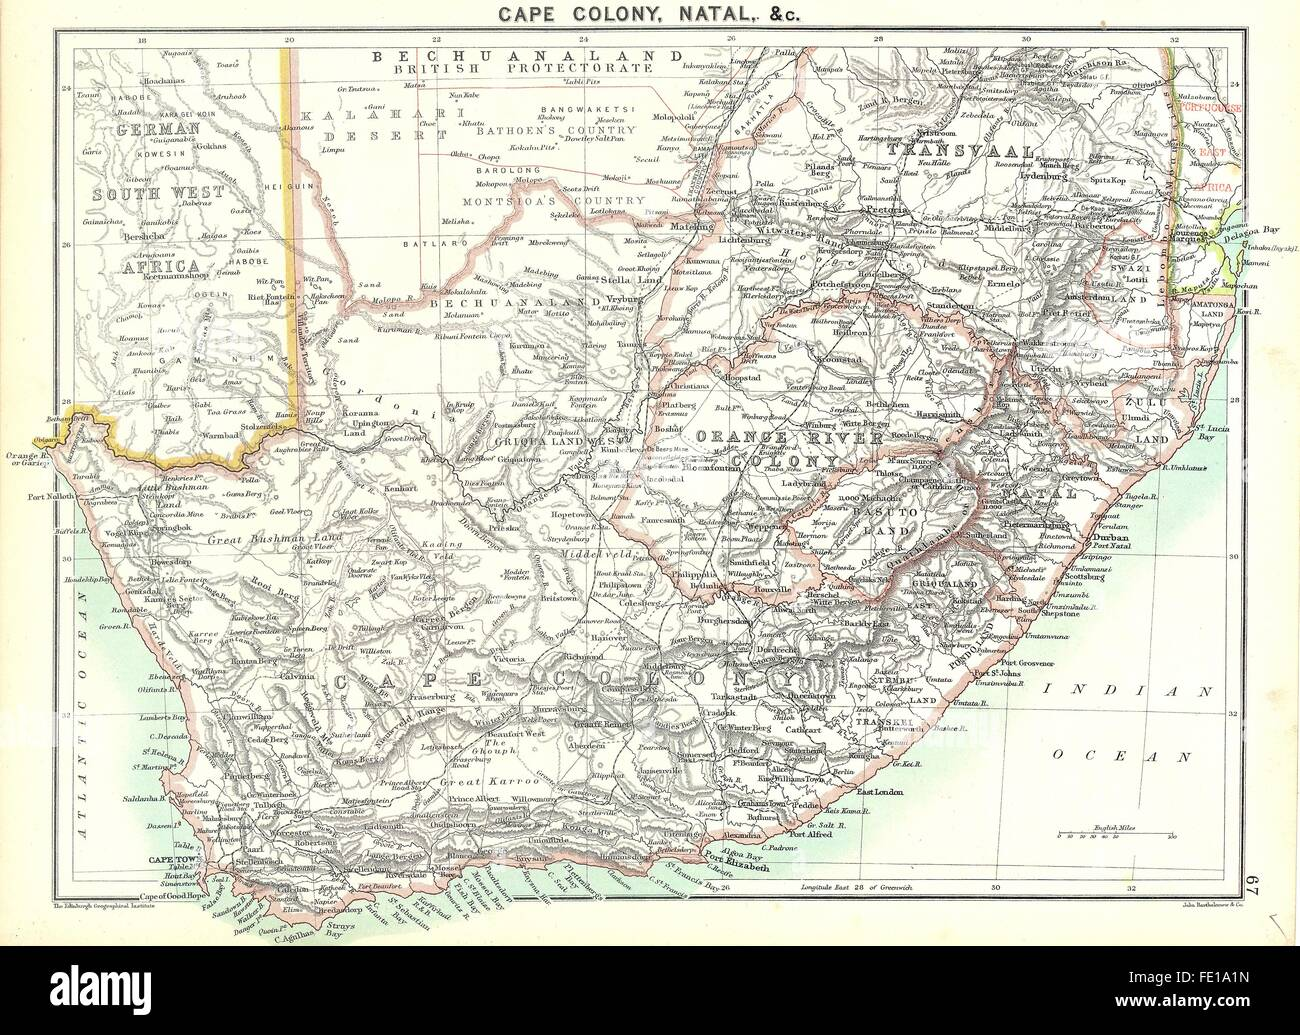 Natal South Africa Map.South Africa Cape Colony Natal 1900 Antique Map Stock Photo